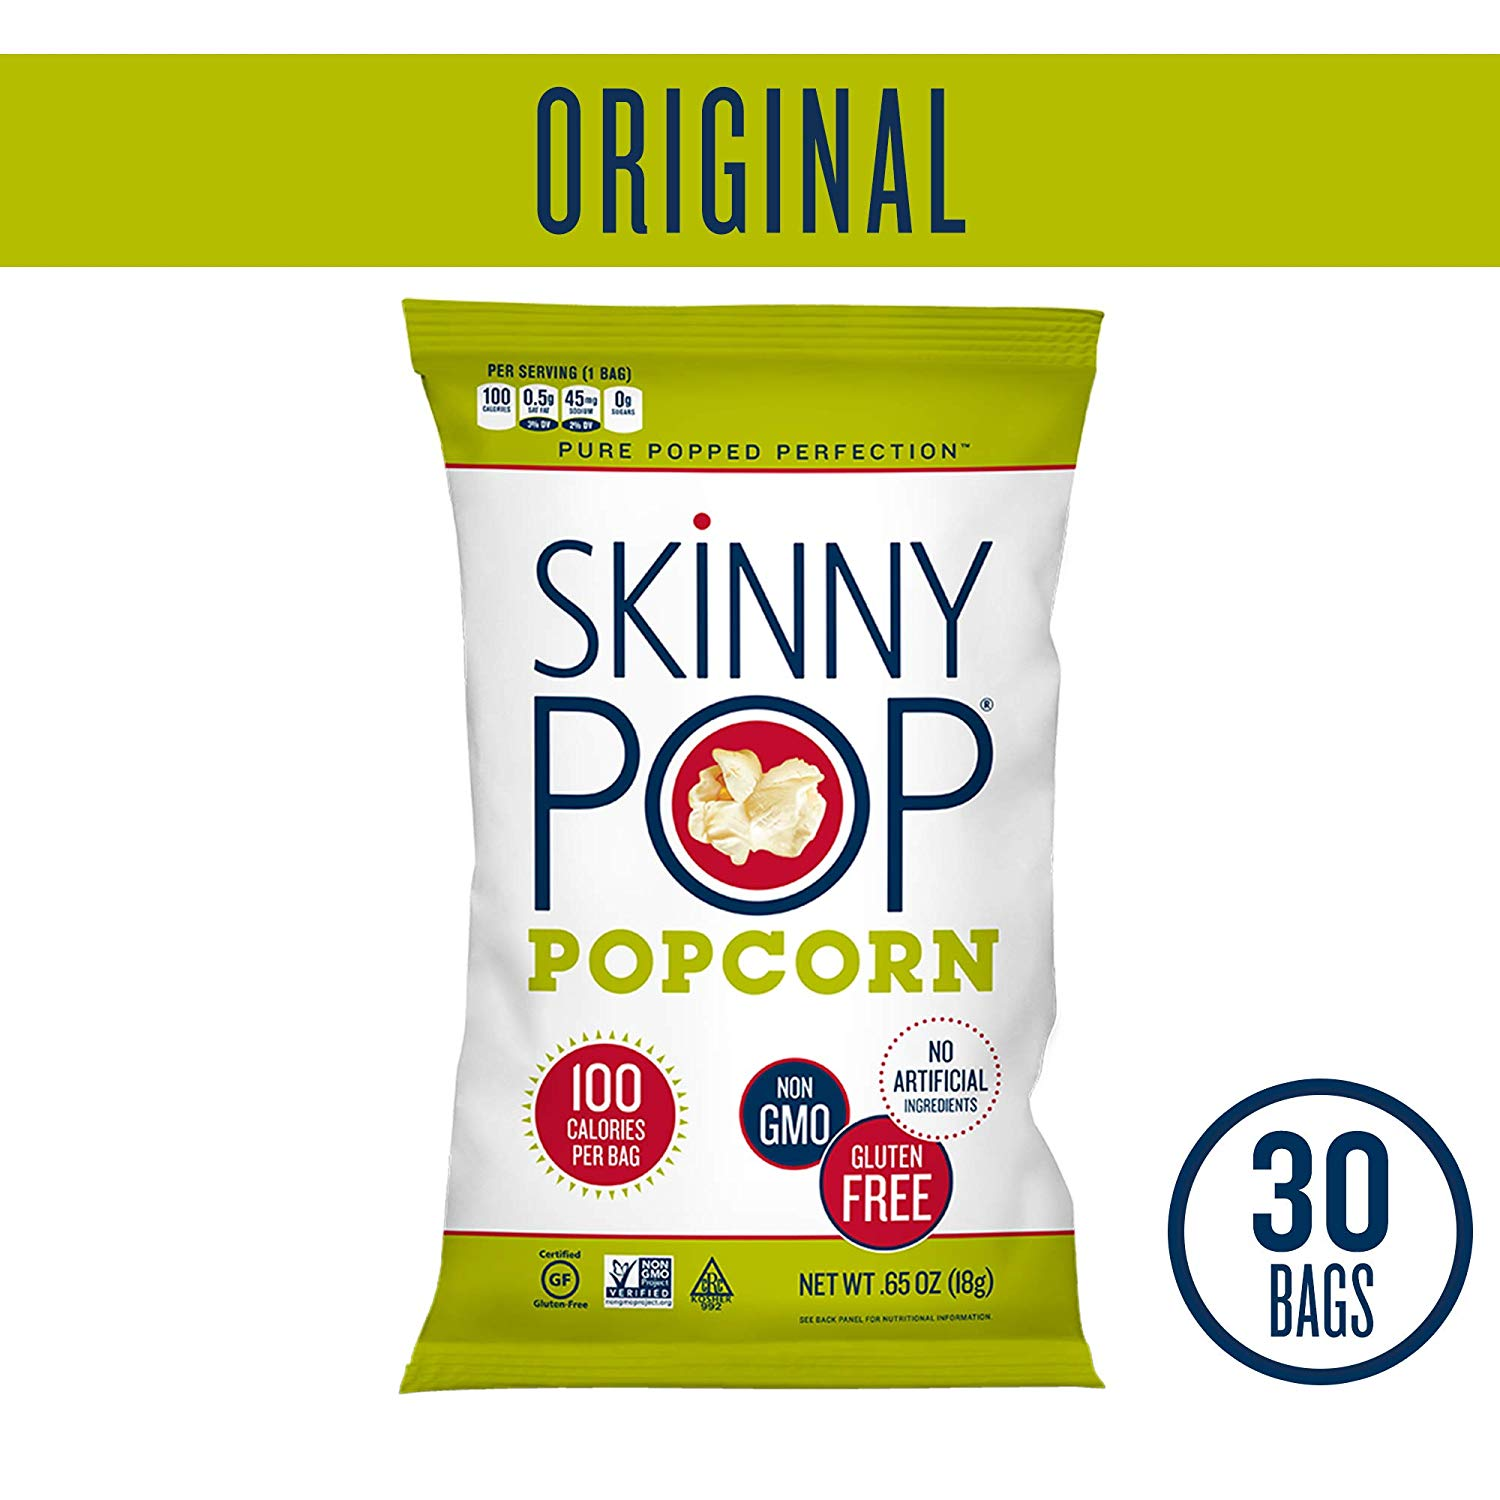 30 SKINNYPOP Original Popped Popcorn Bags only $8.93 with coupon!